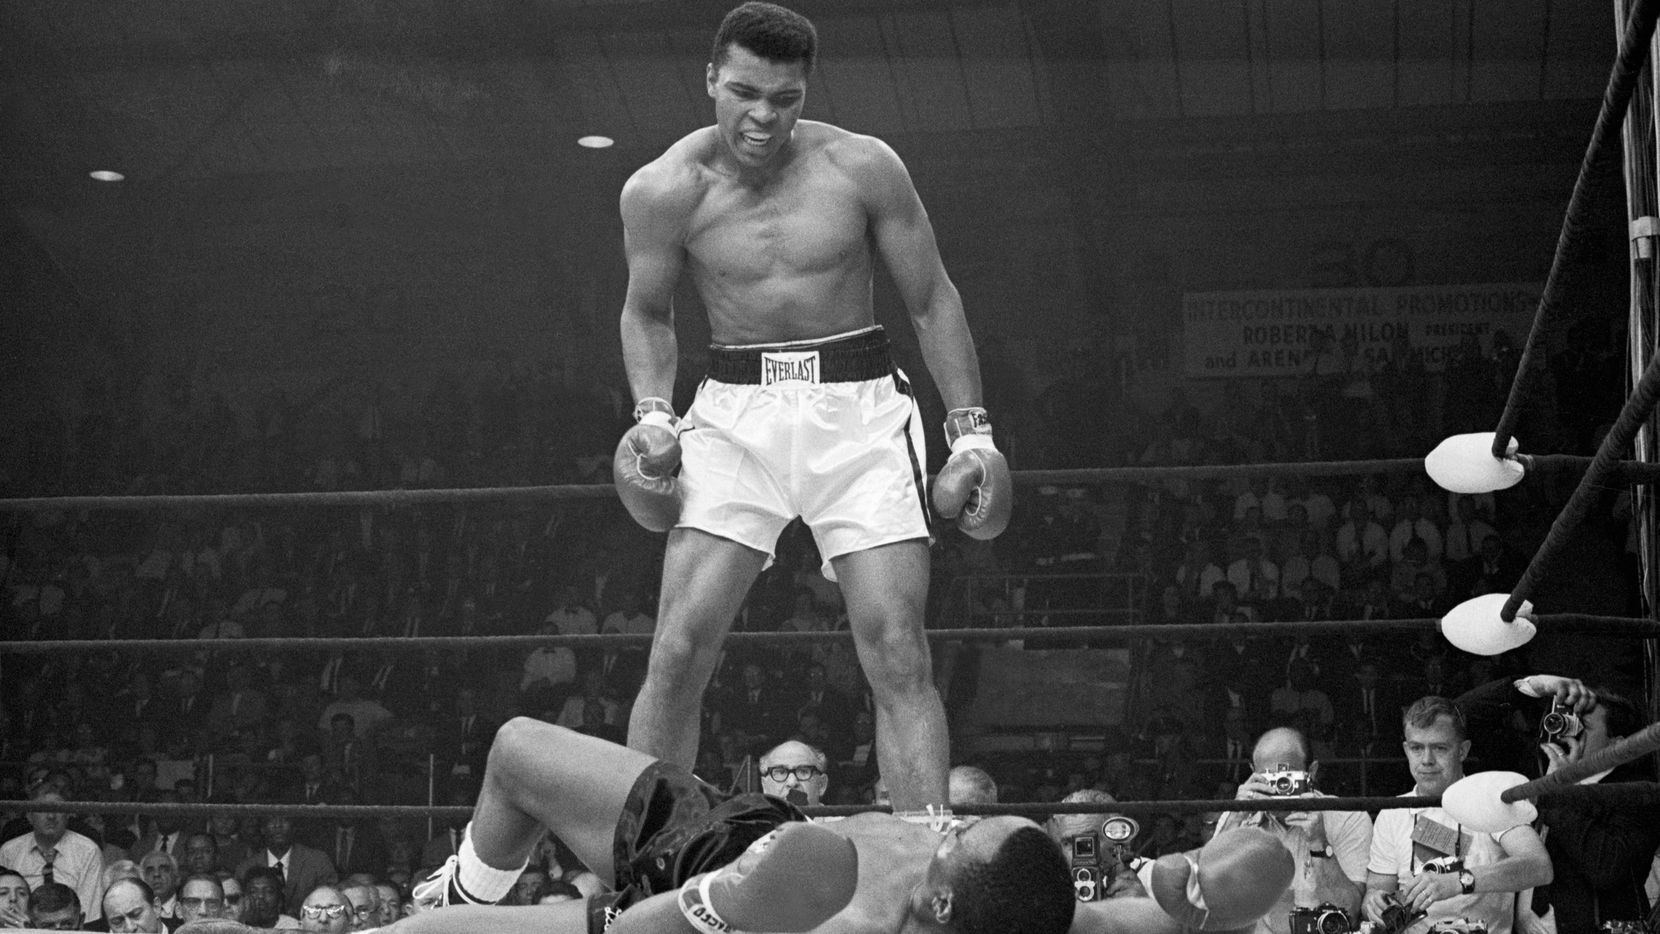 Heavyweight champion Muhammad Ali stood over Sonny Liston and taunted him to get up during their 1965 title fight. Ali knocked Liston out in one minute in the first round during their bout at the Central Maine Youth Center in Lewiston, Maine.